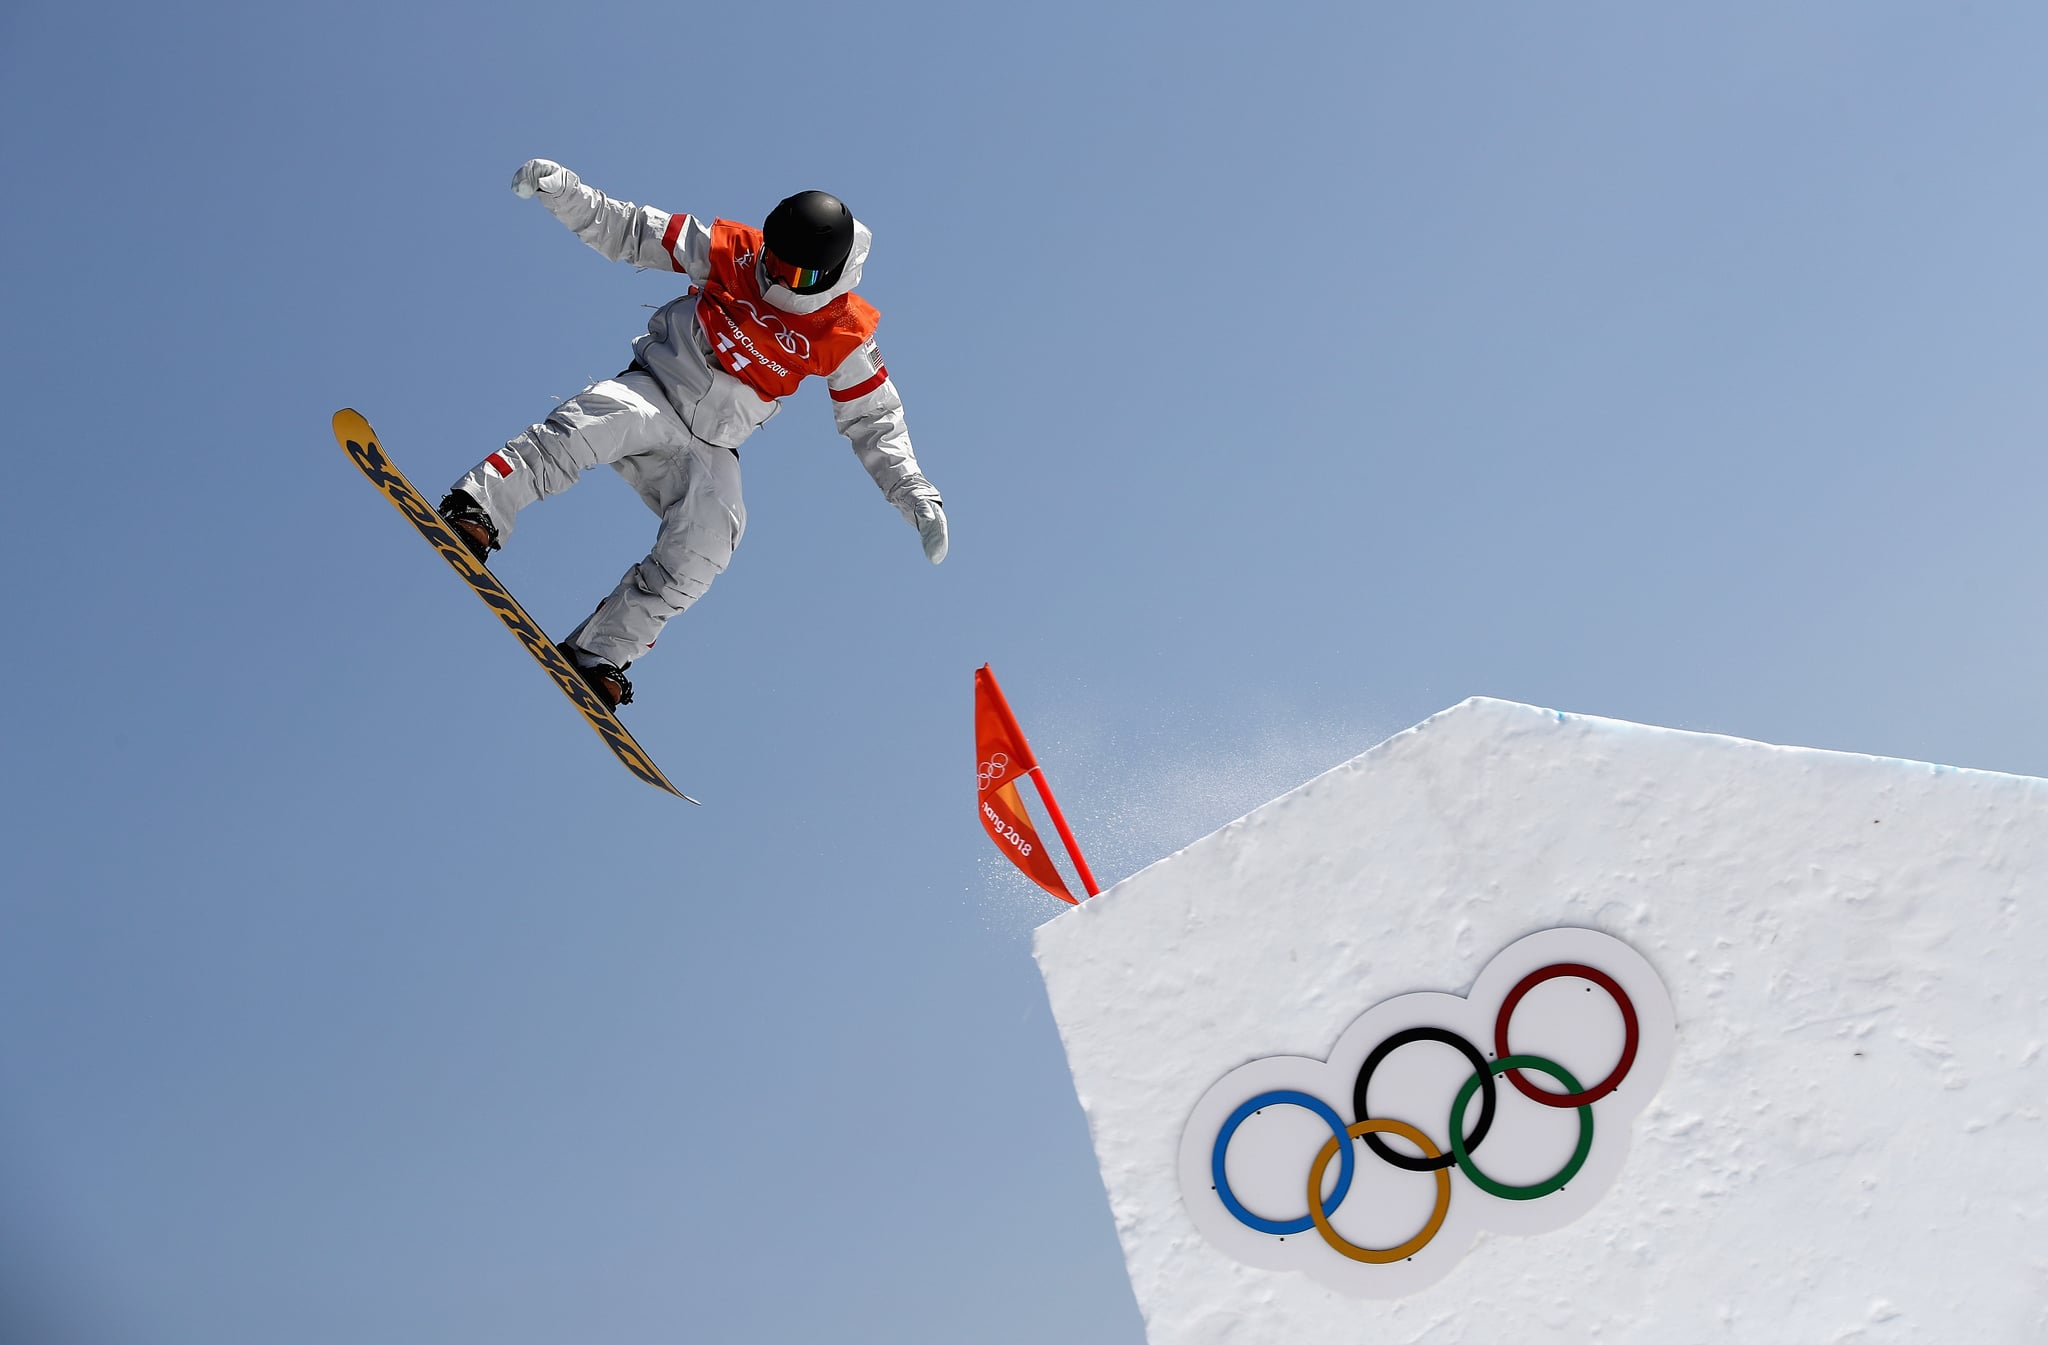 Sebastien Toutant Wins Gold Medal for Snowboarding Big Air at Olympics 2018